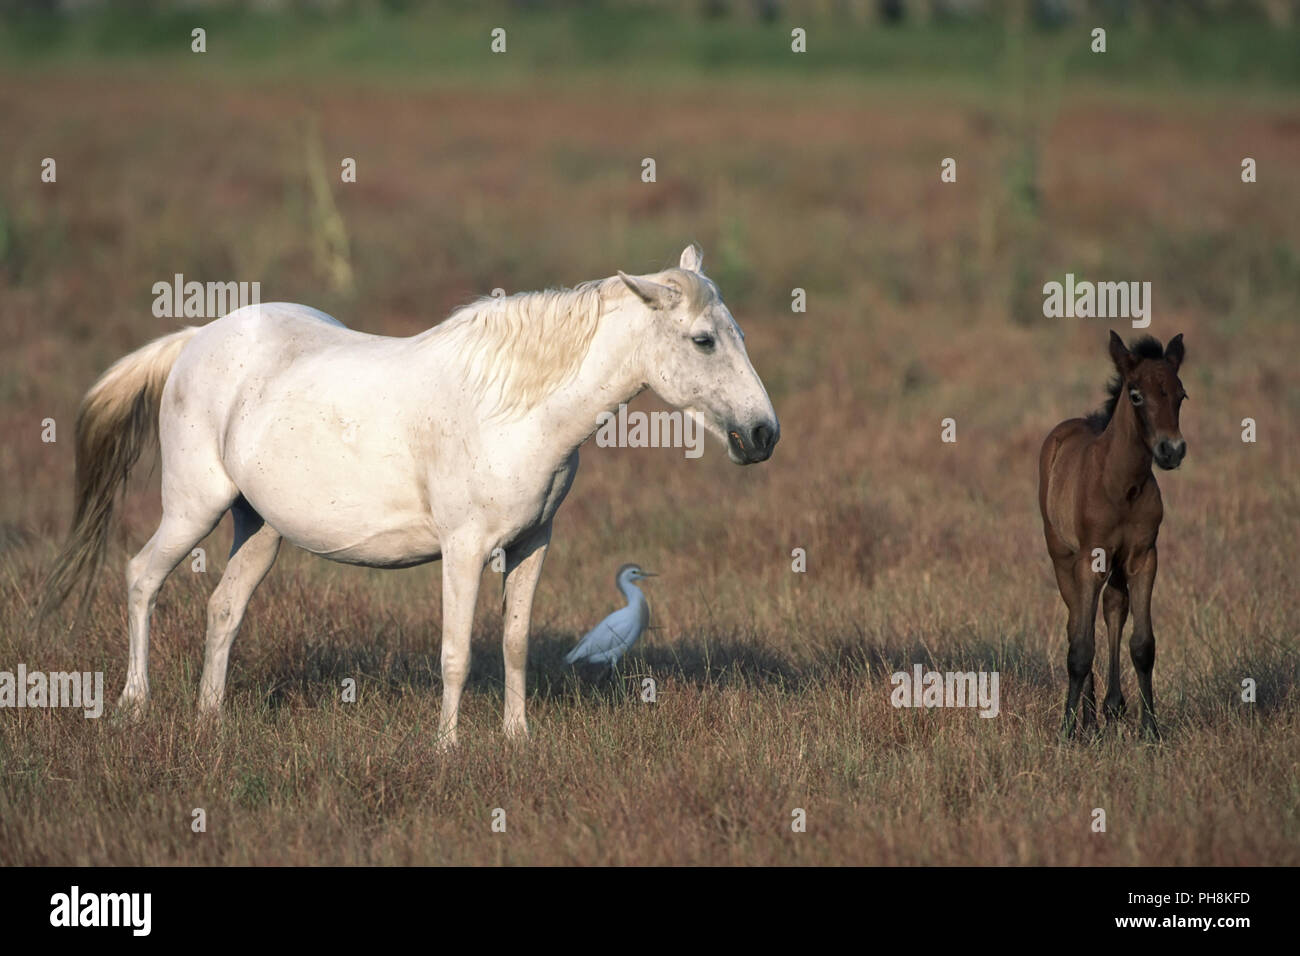 Camargue-Pferd mit Fohlen Camargue horse with foal - Stock Image